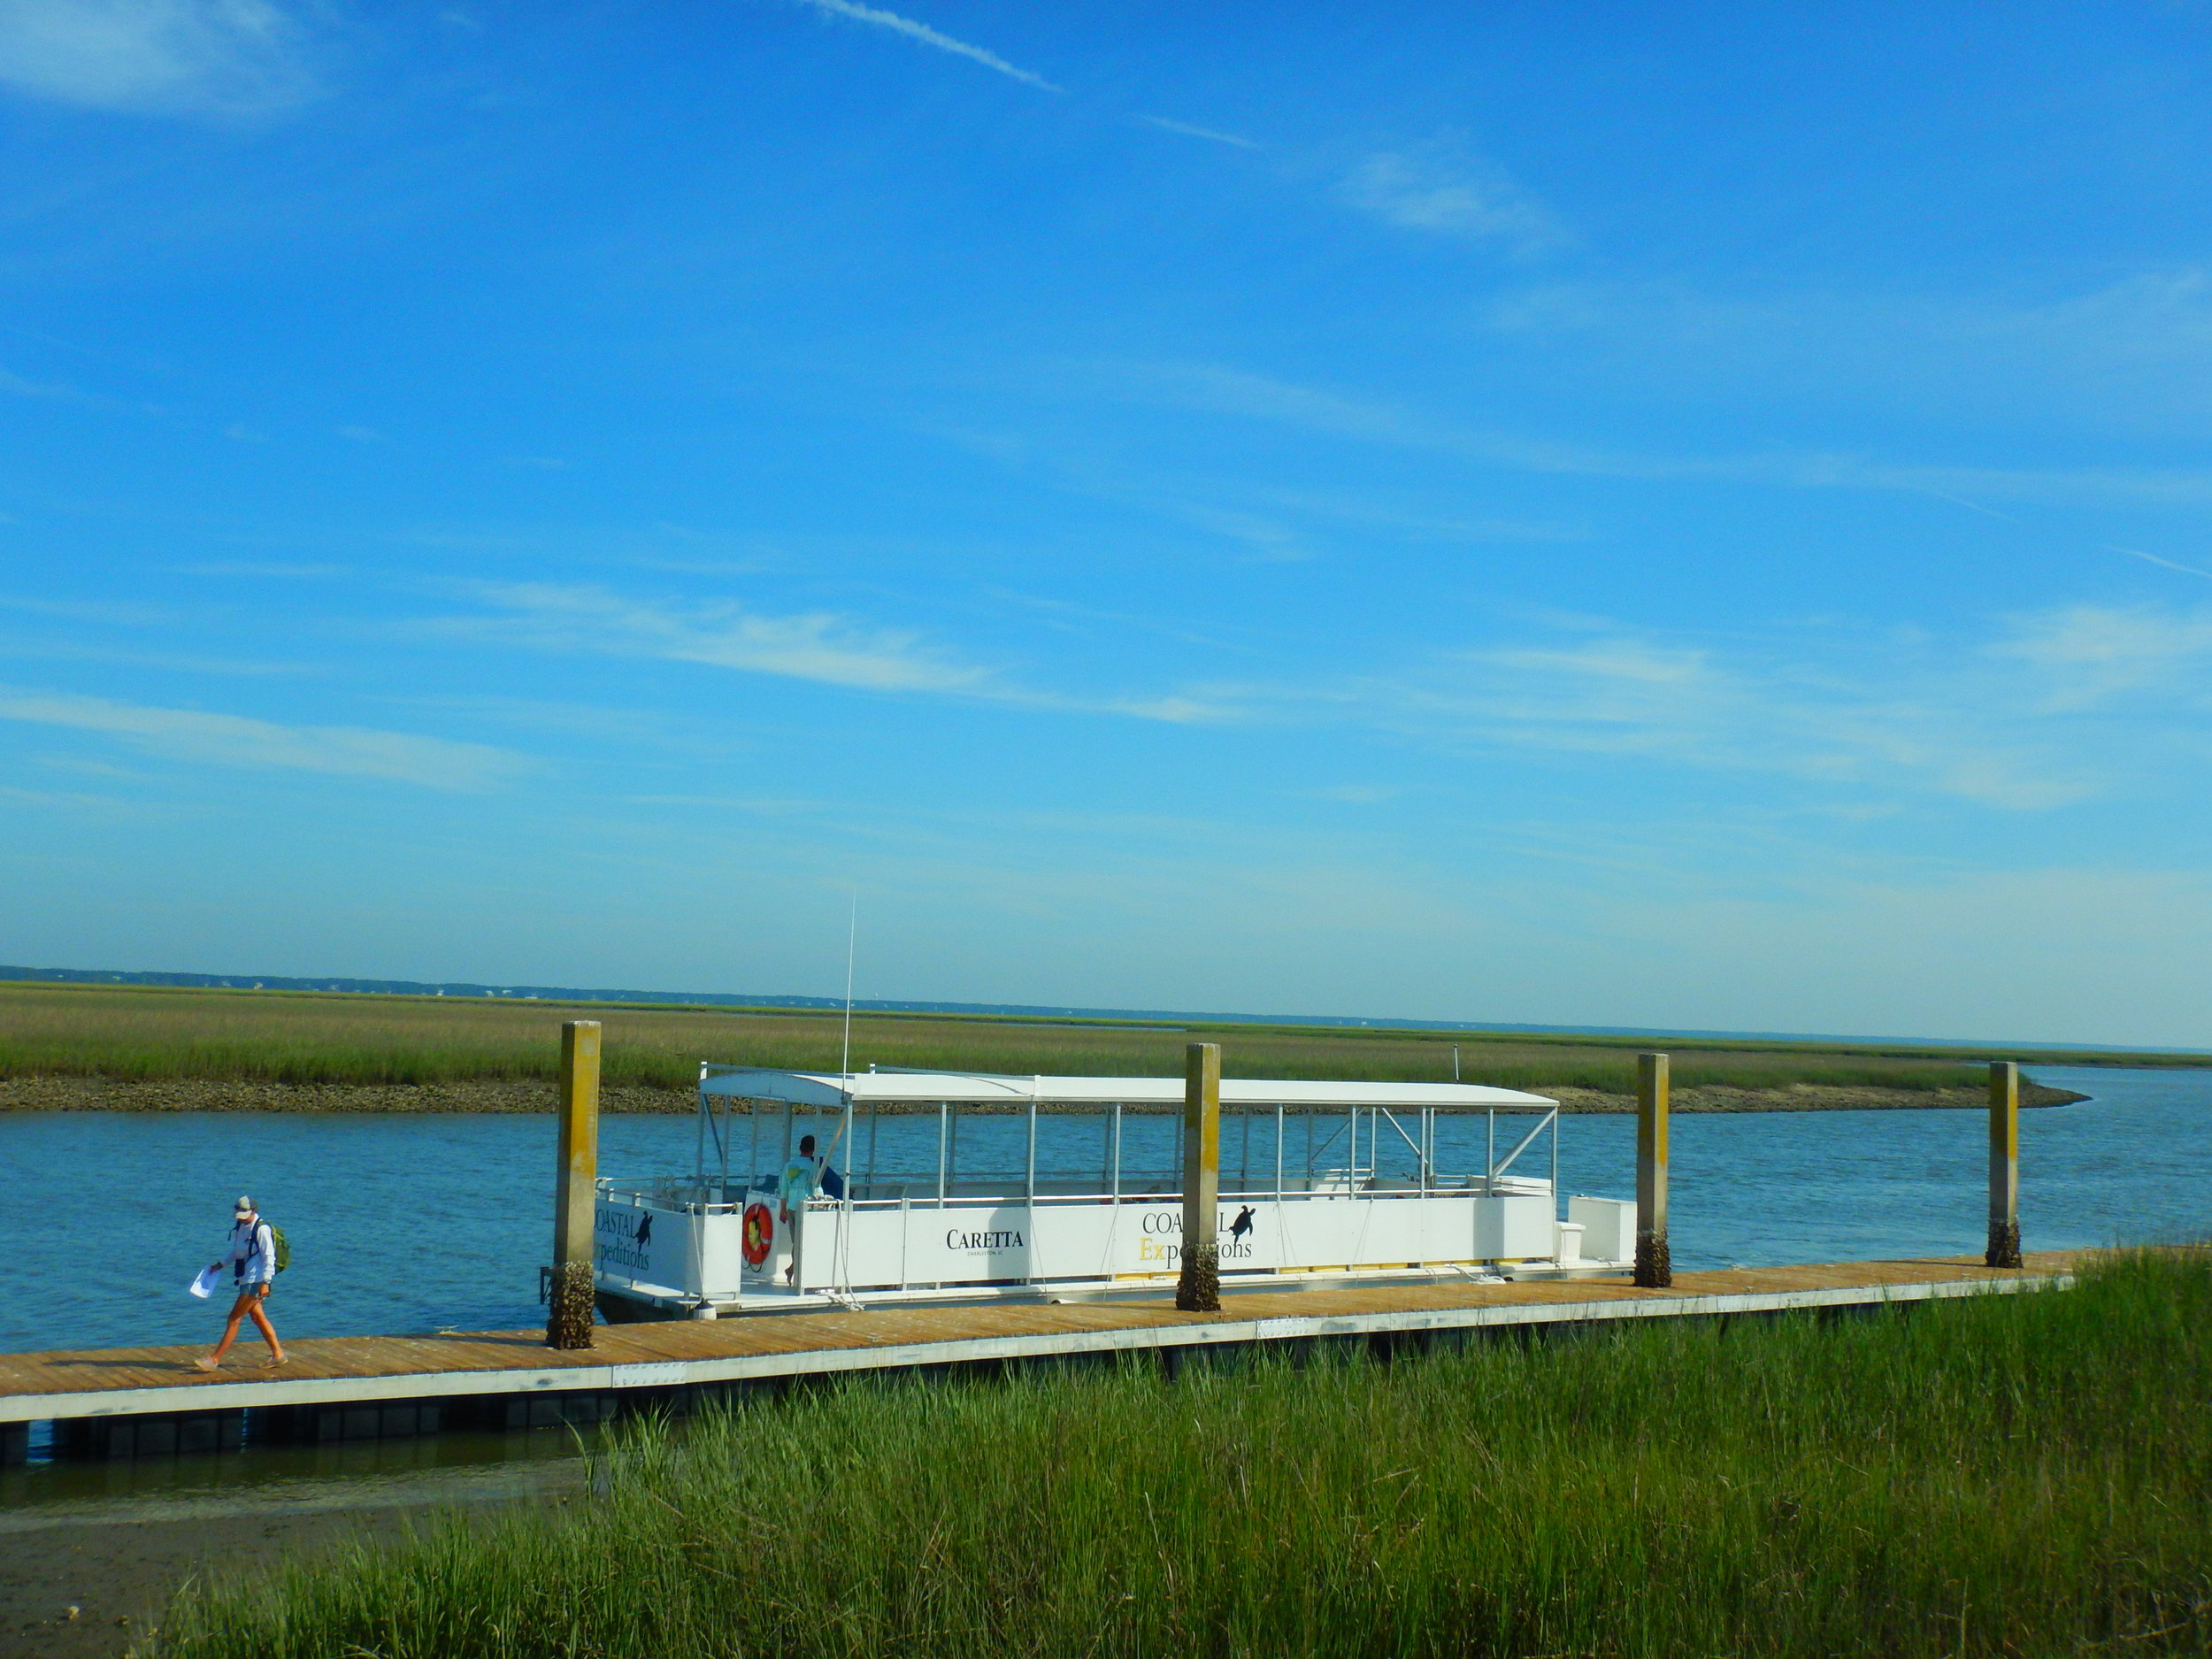 The ferry makes two regular  runs to the island — at 9 and noon — three days a week, leaving from Garris landing in Awendaw.